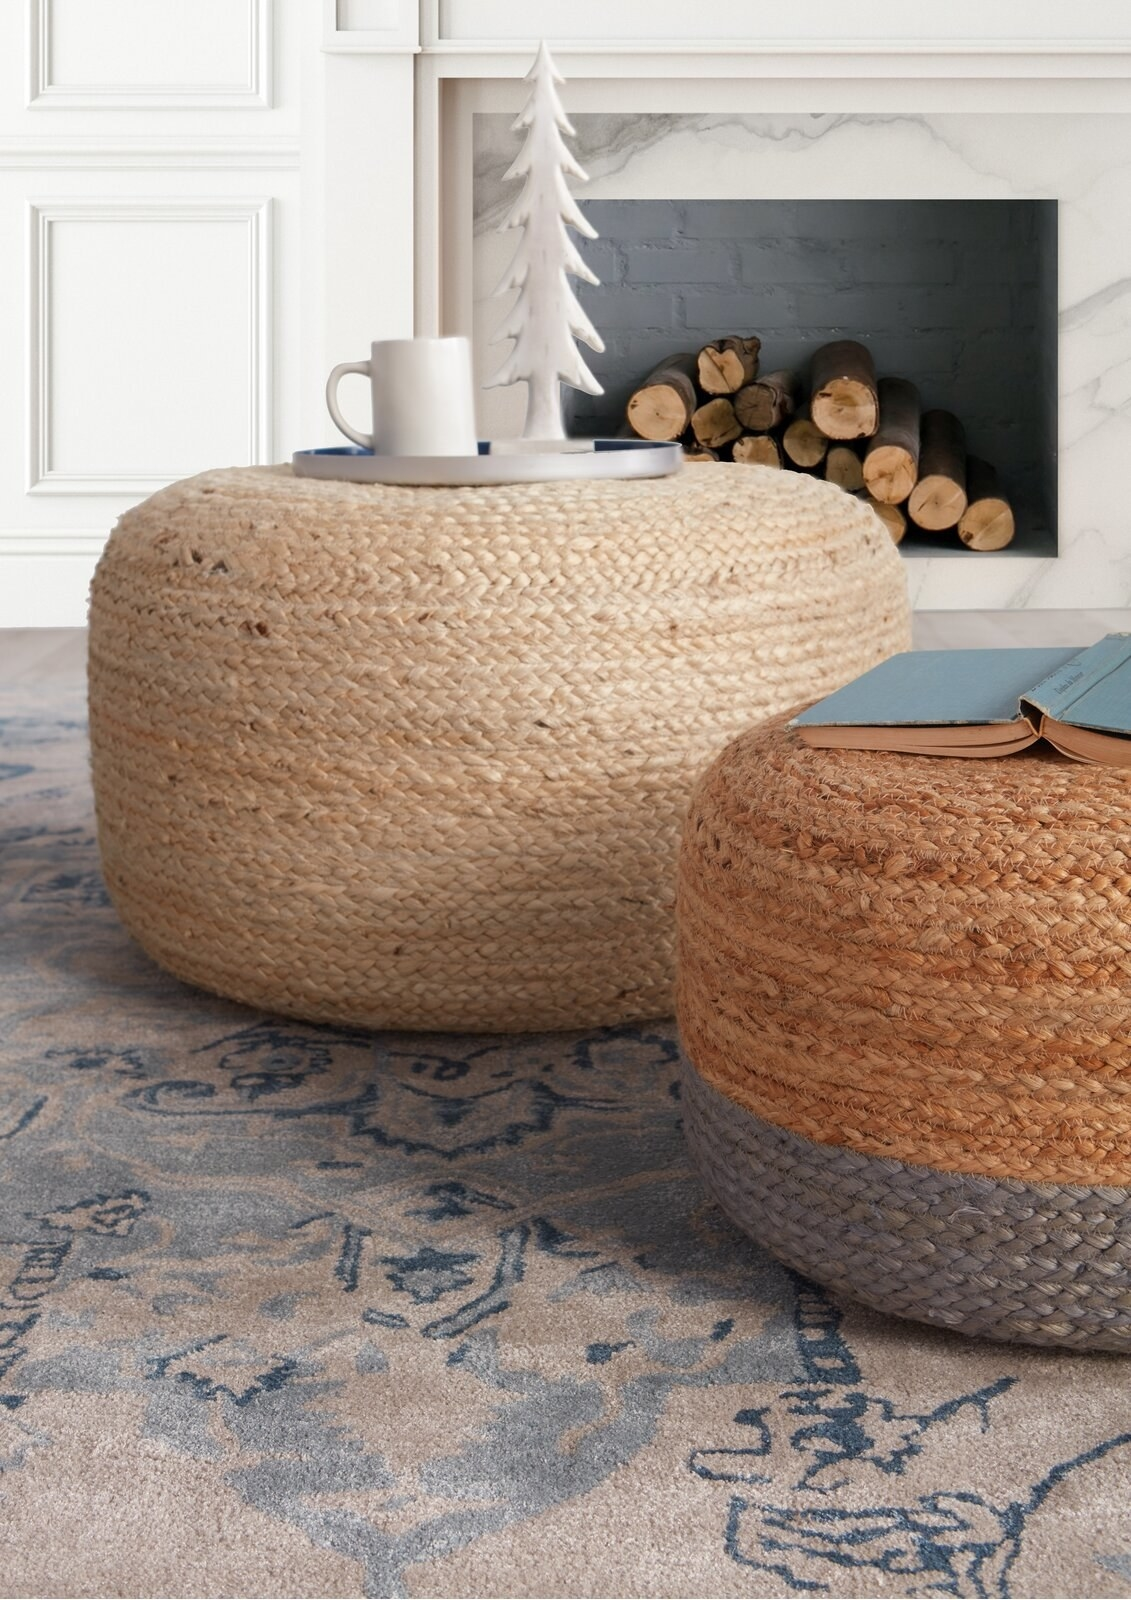 The poufs, which are round with flat tops, and made of woven jute